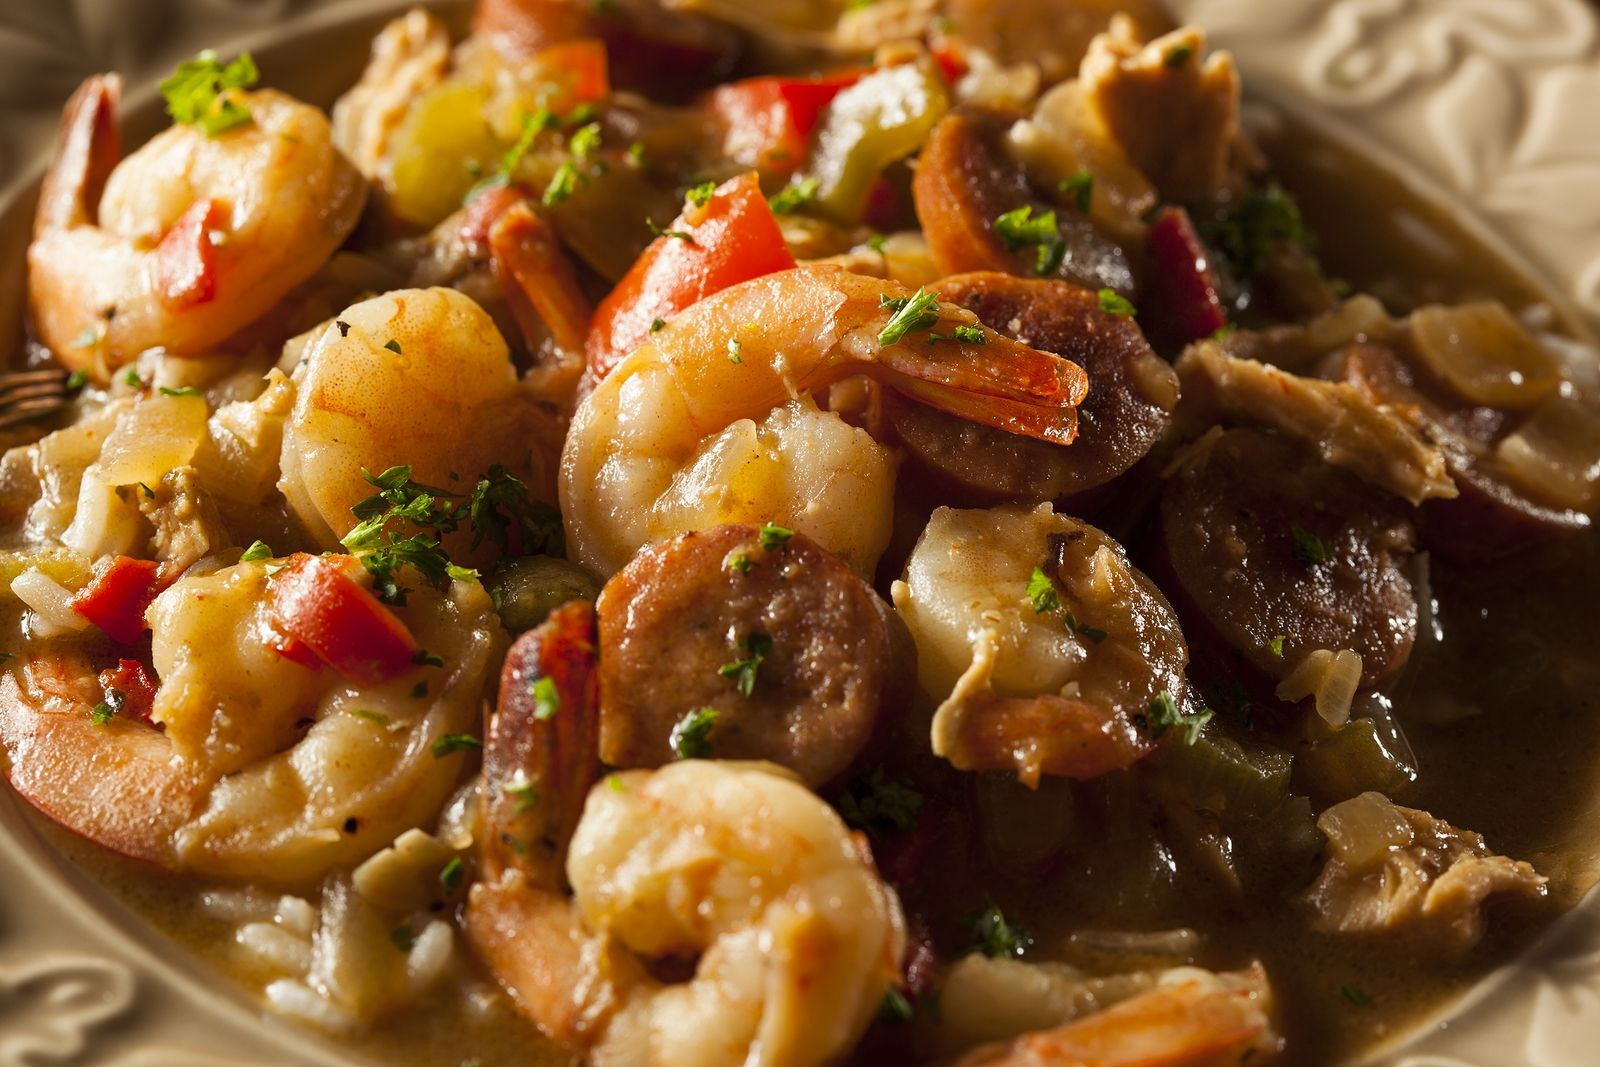 Cajun Seafood is Often Accompanied with Vegetables and Carbohydrates